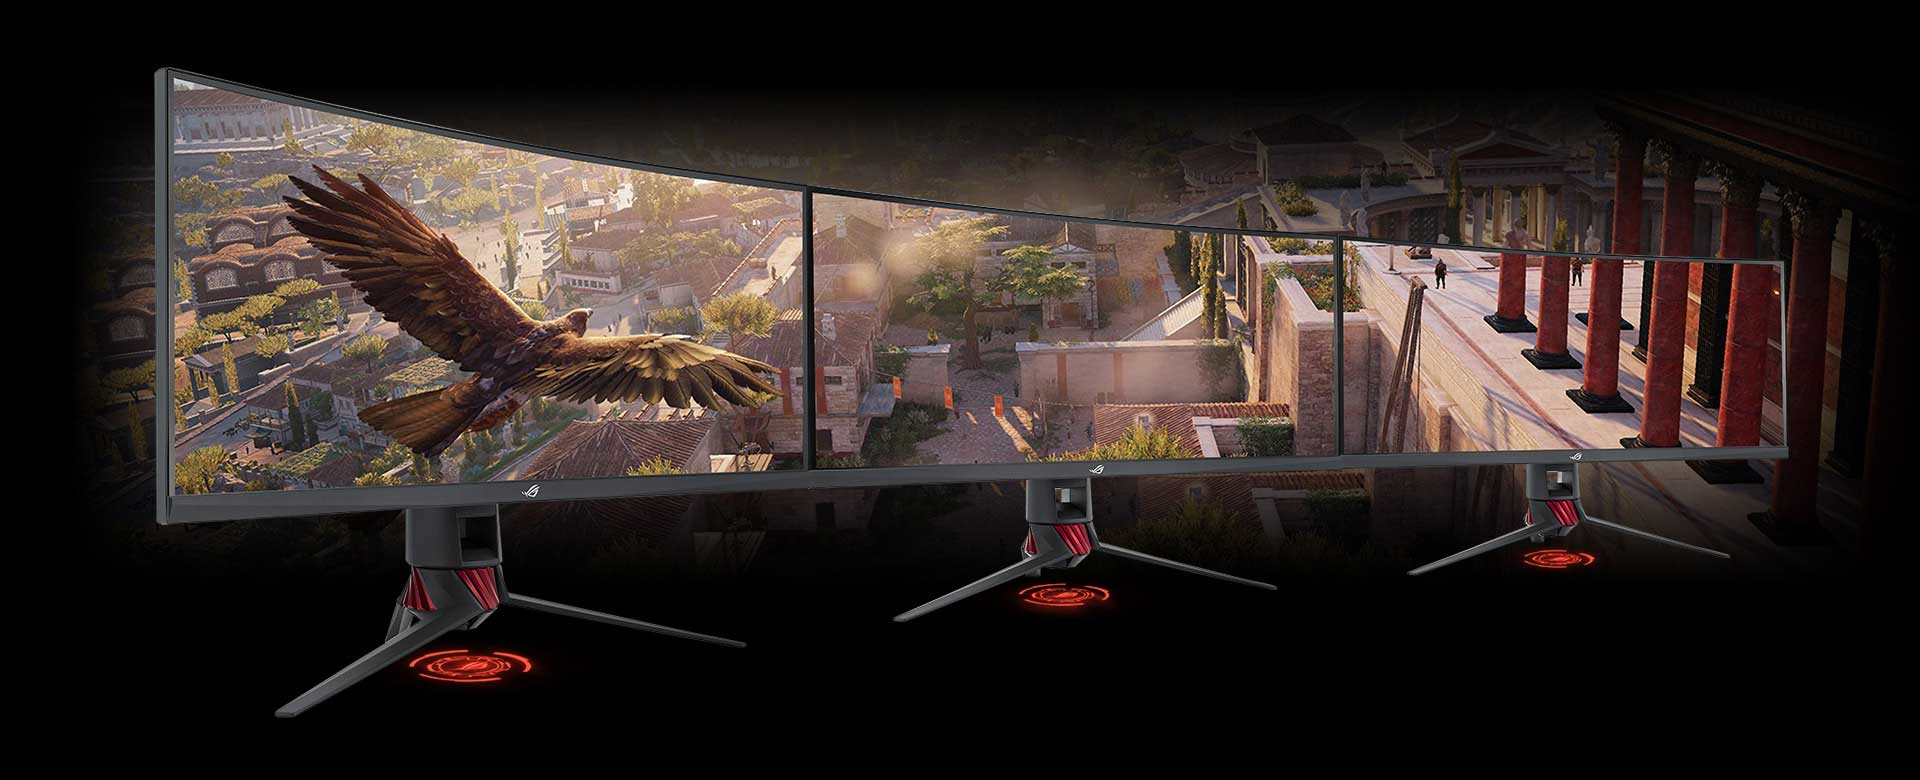 Asus-Curved-Monitor